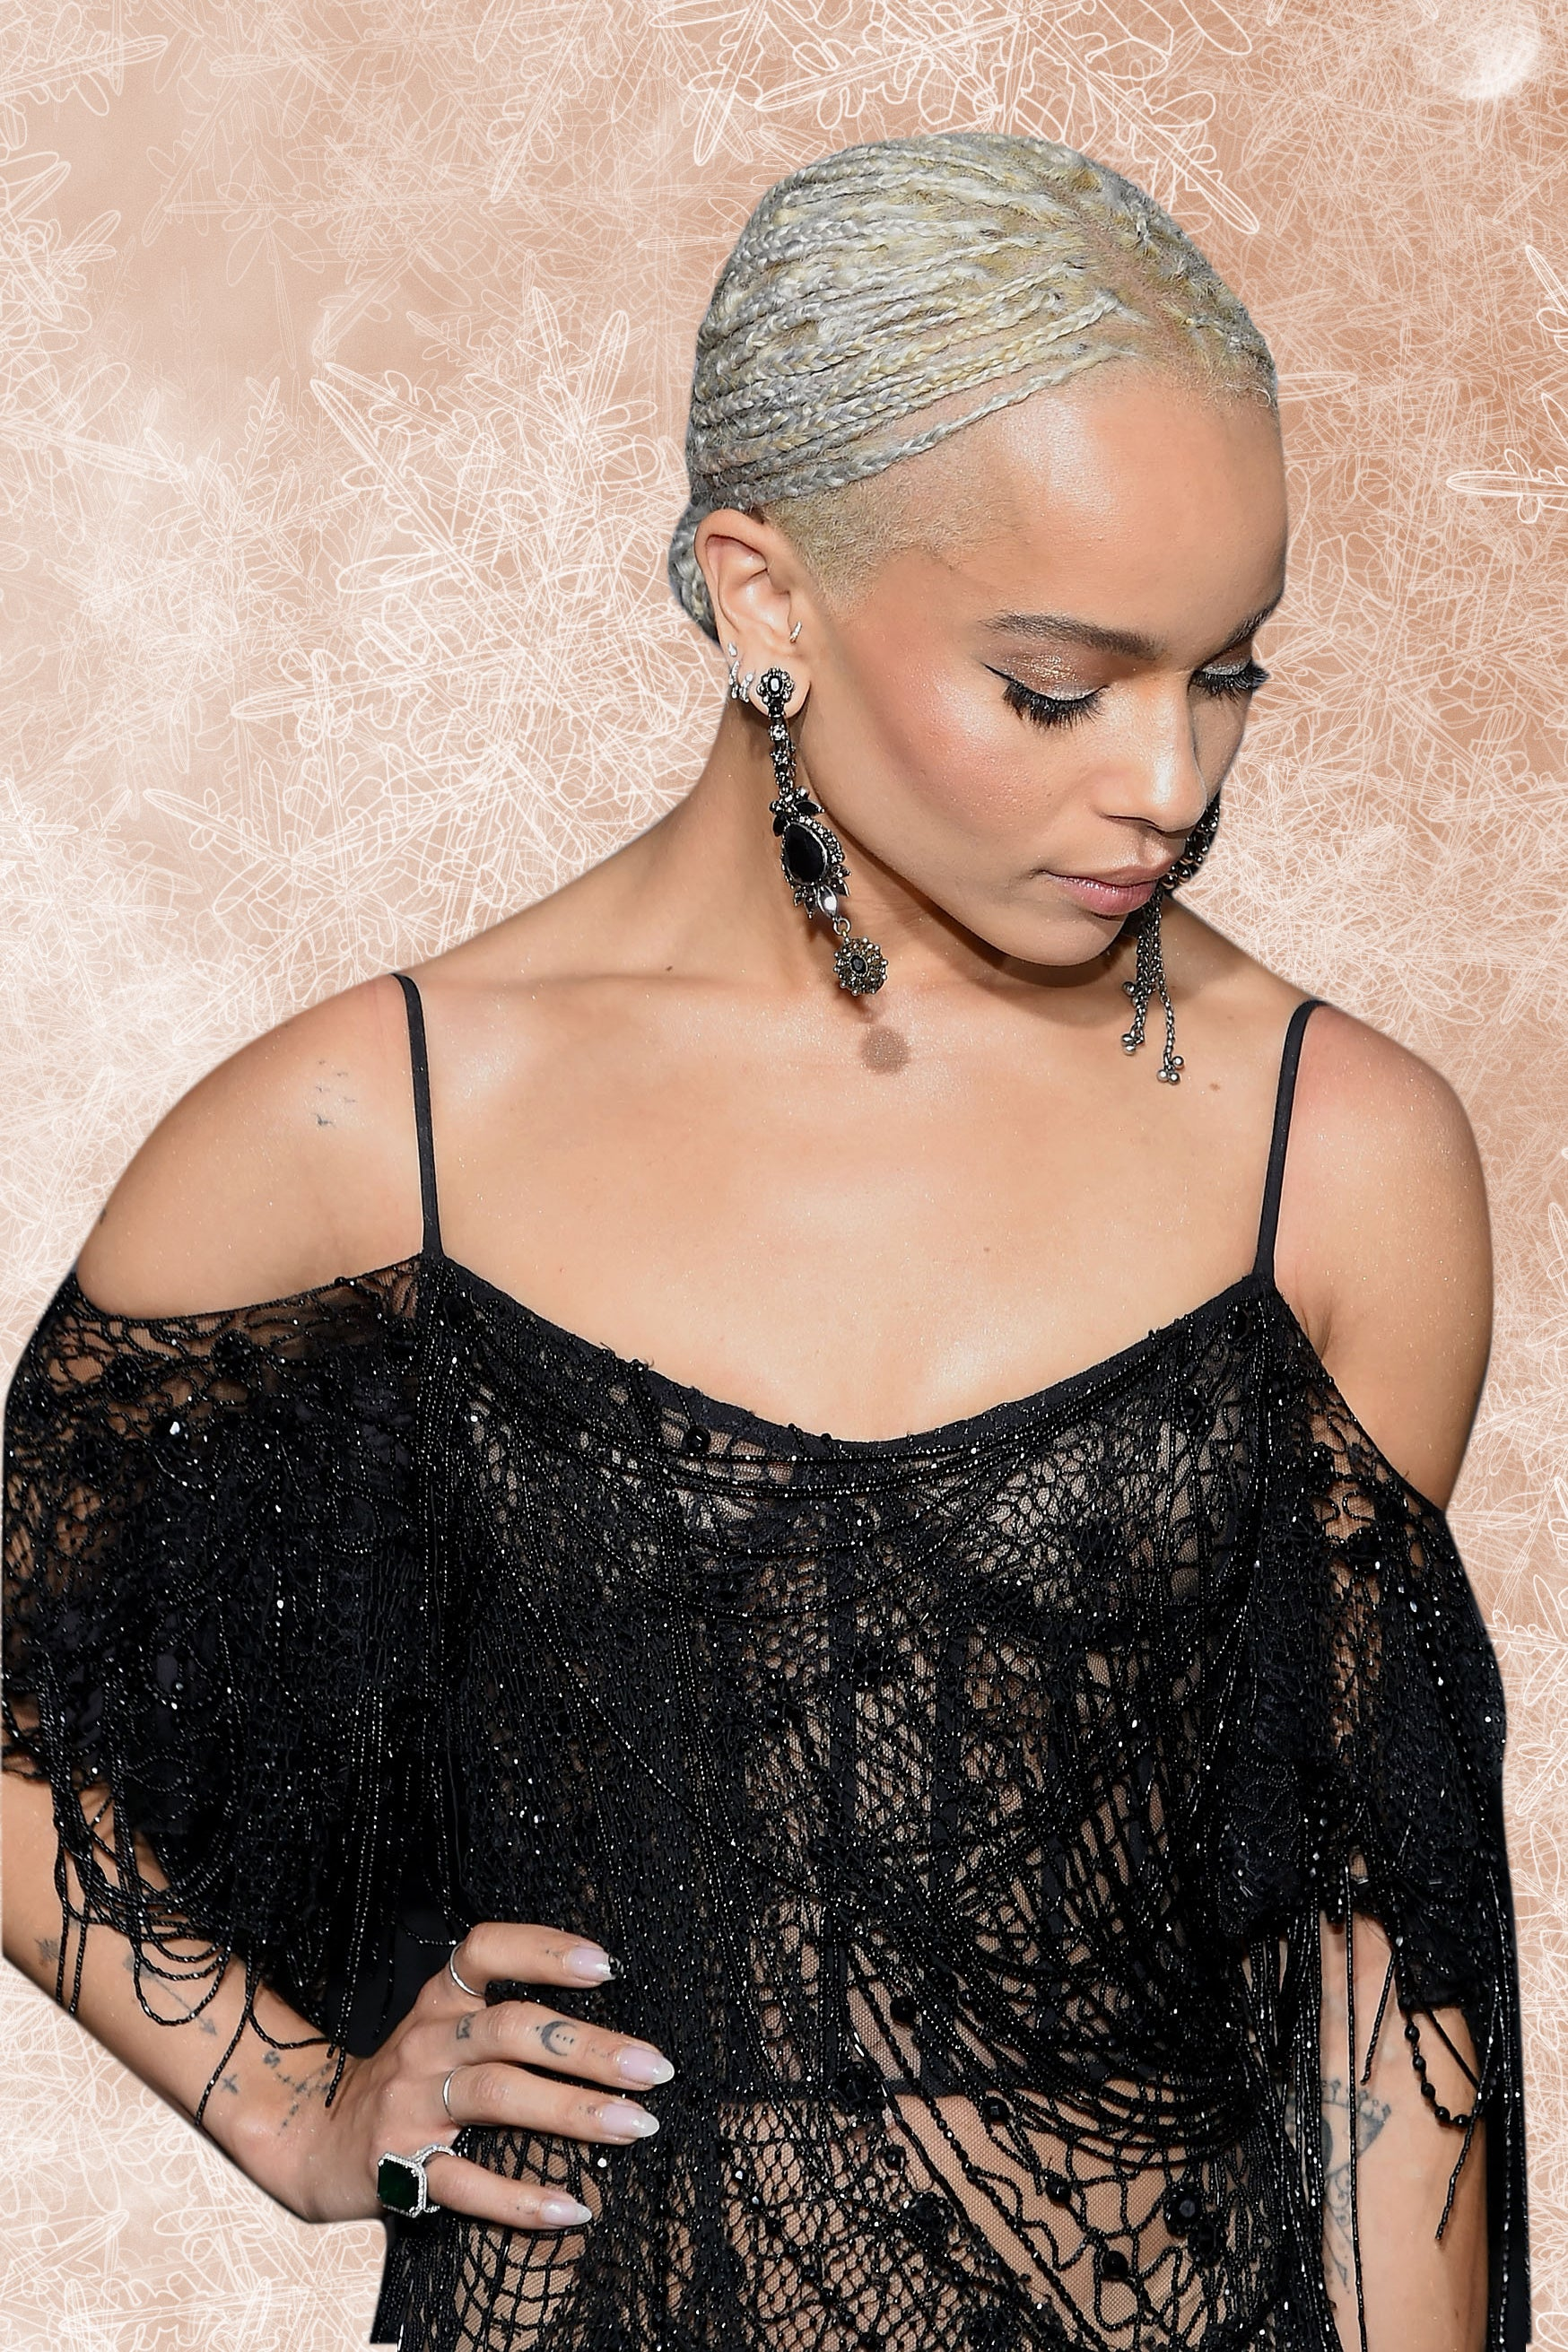 Look of the Day: Zoe Kravitz Looks Like An Ethereal Ice Queen In Sheer Beaded Gown